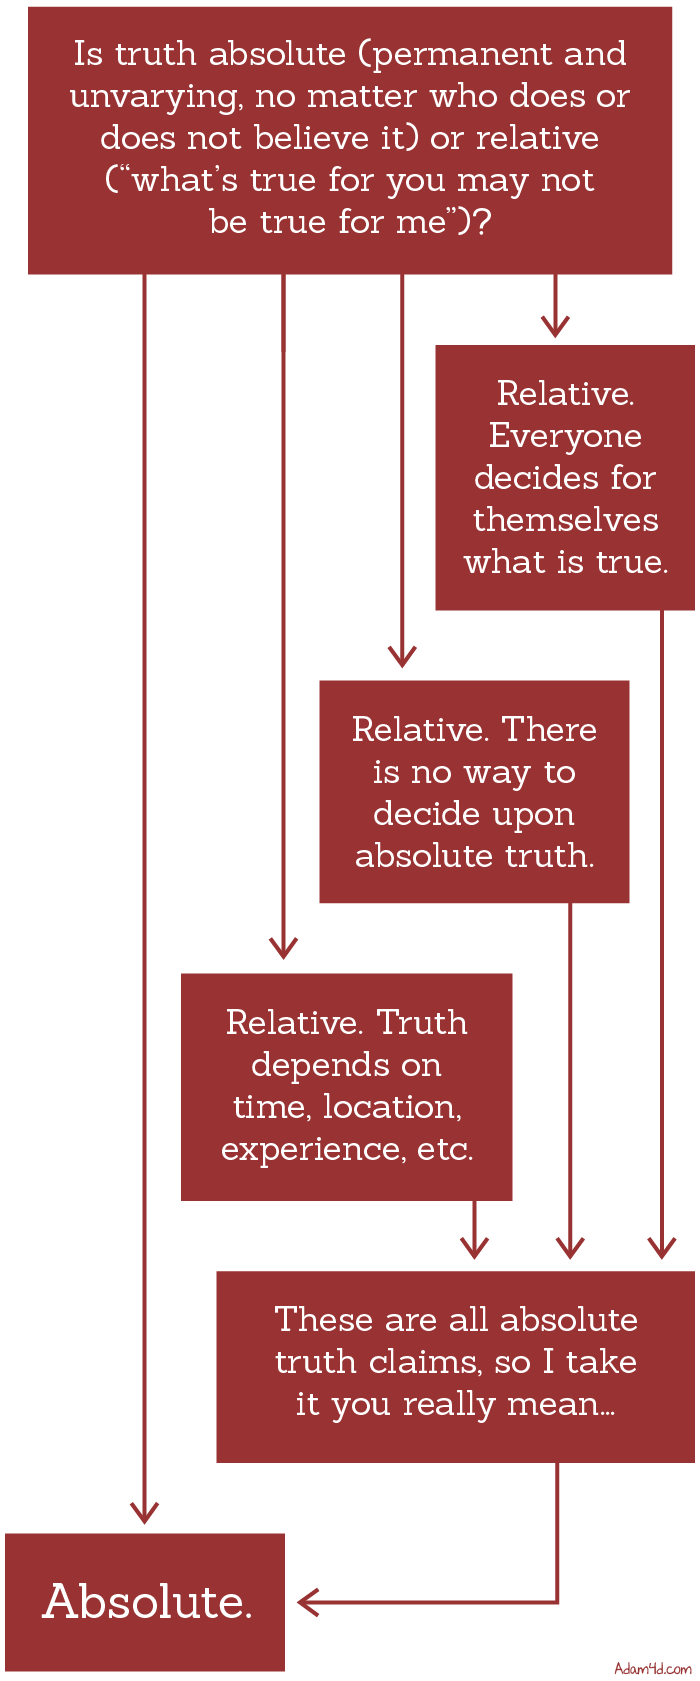 Absolute and relative truth. The difference of relative truth from absolute 83